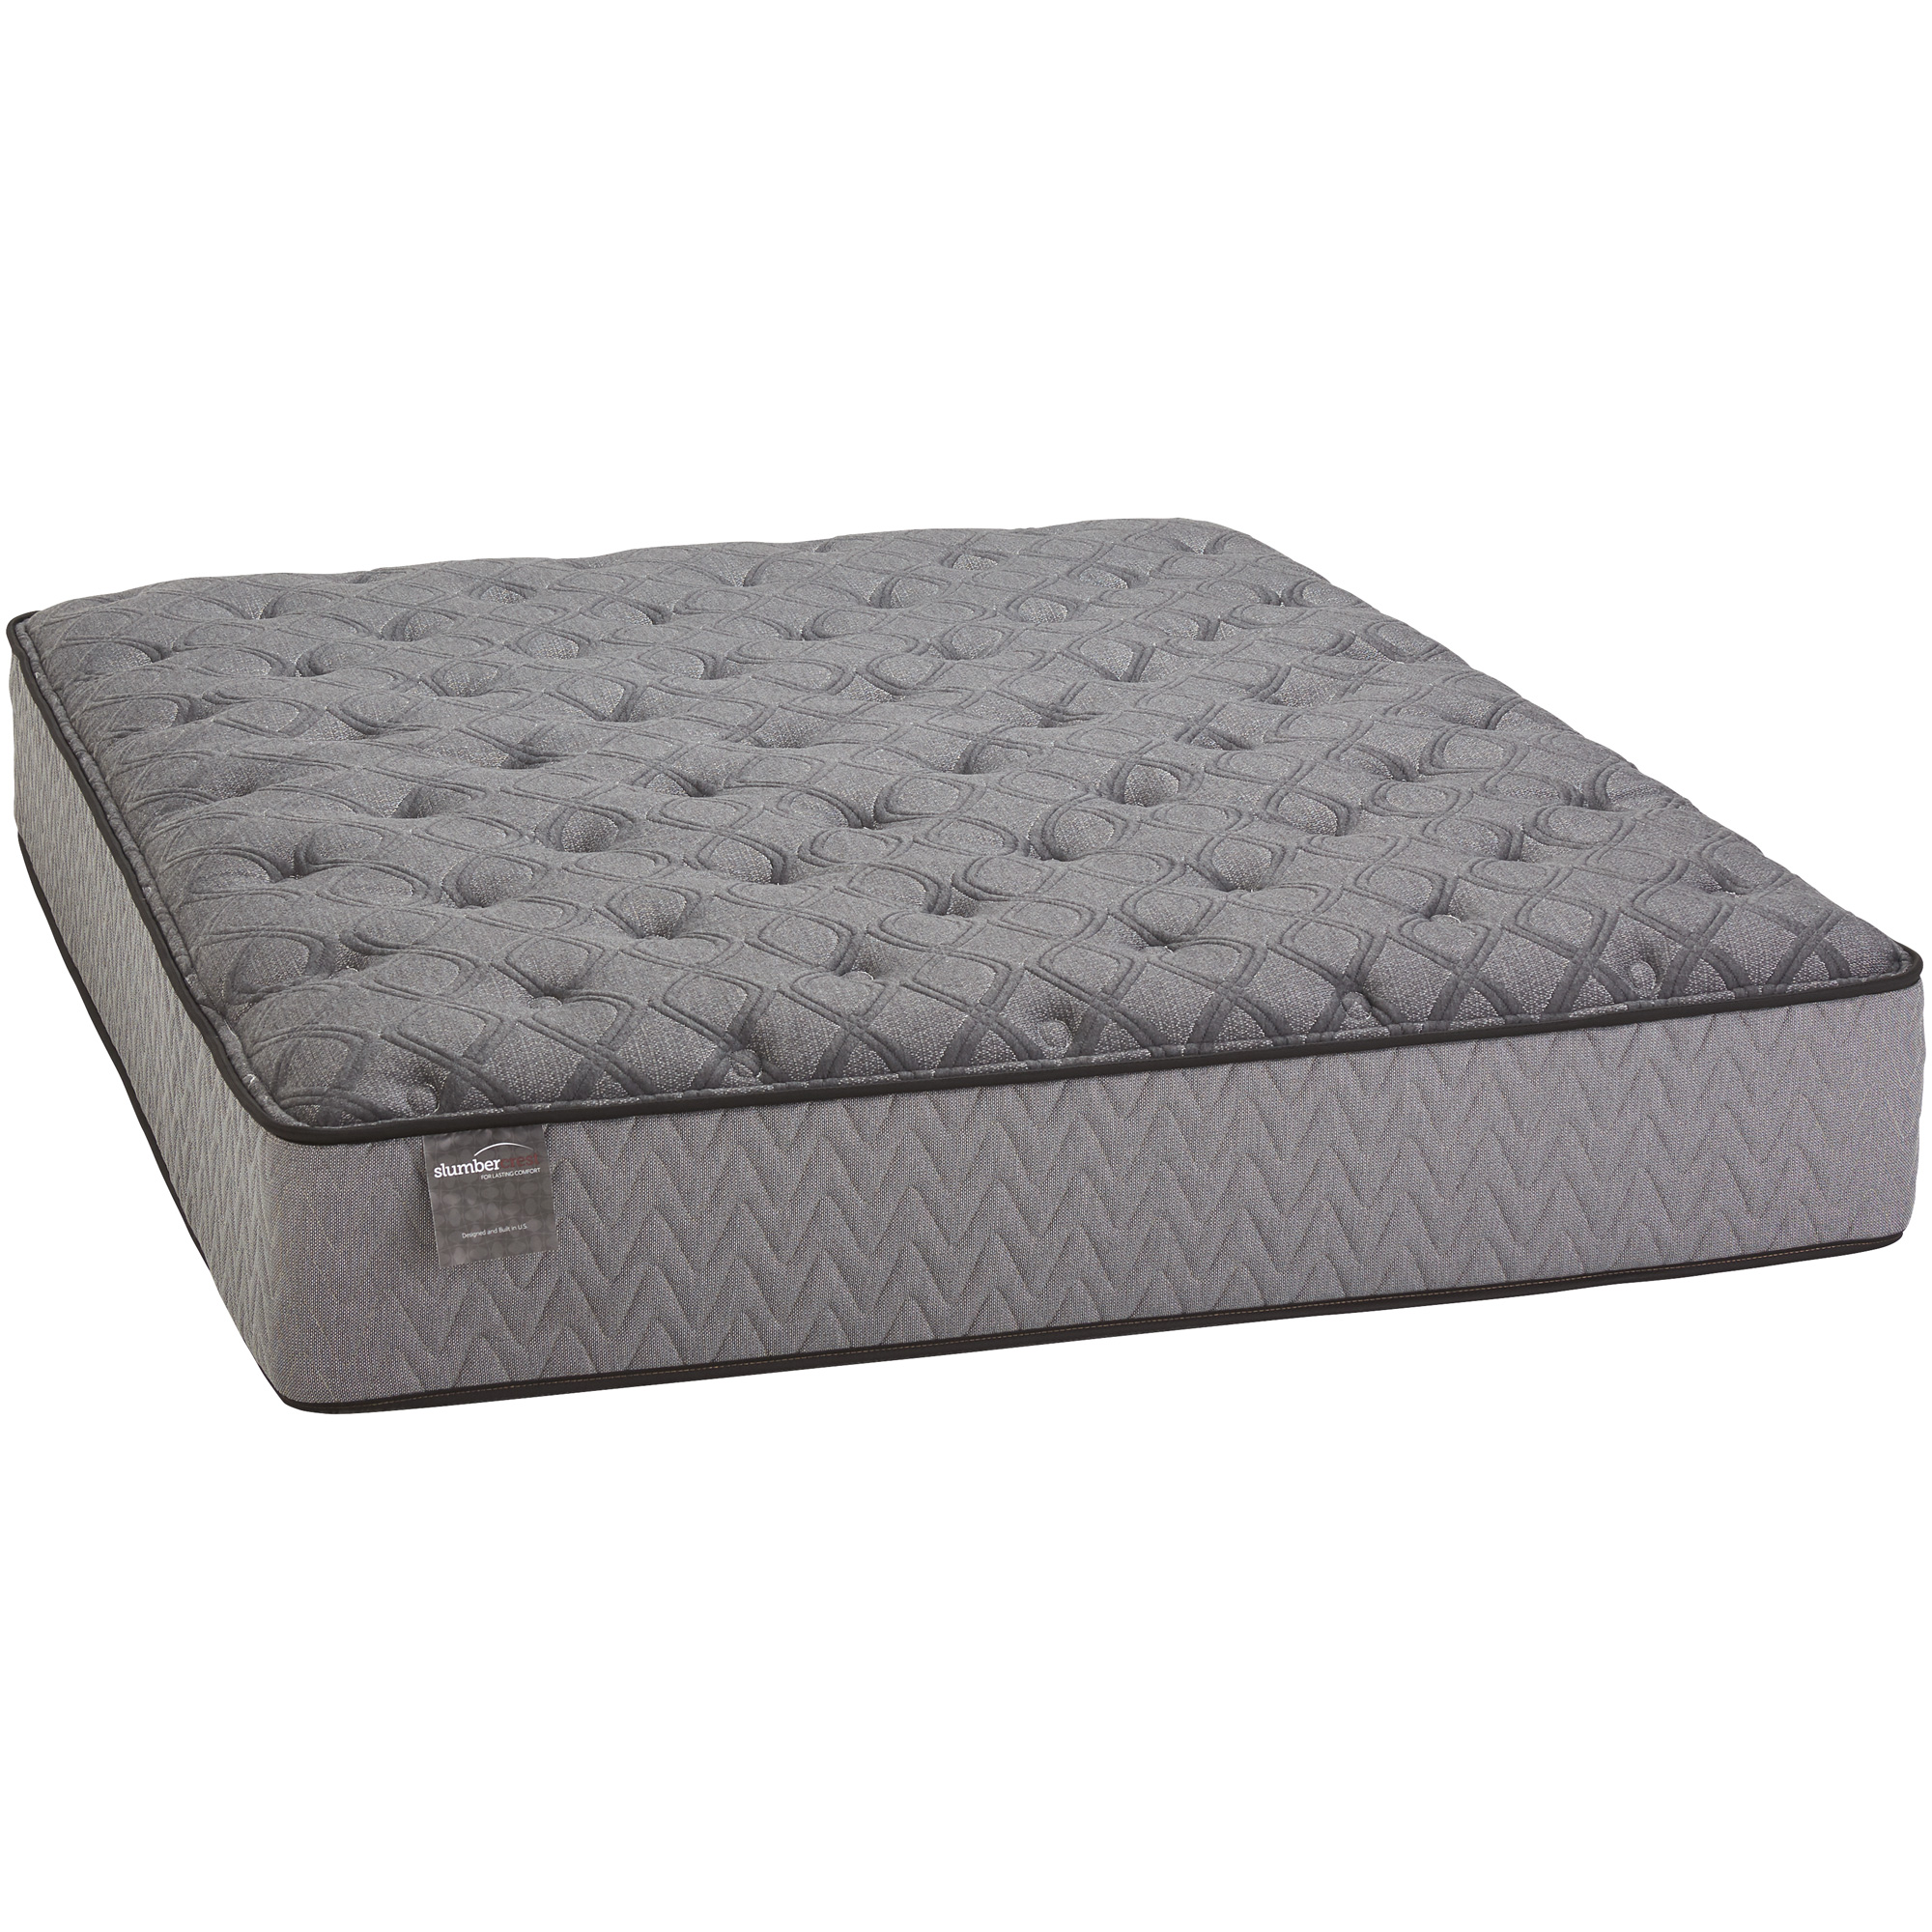 Slumbercrest Plush California King Mattress